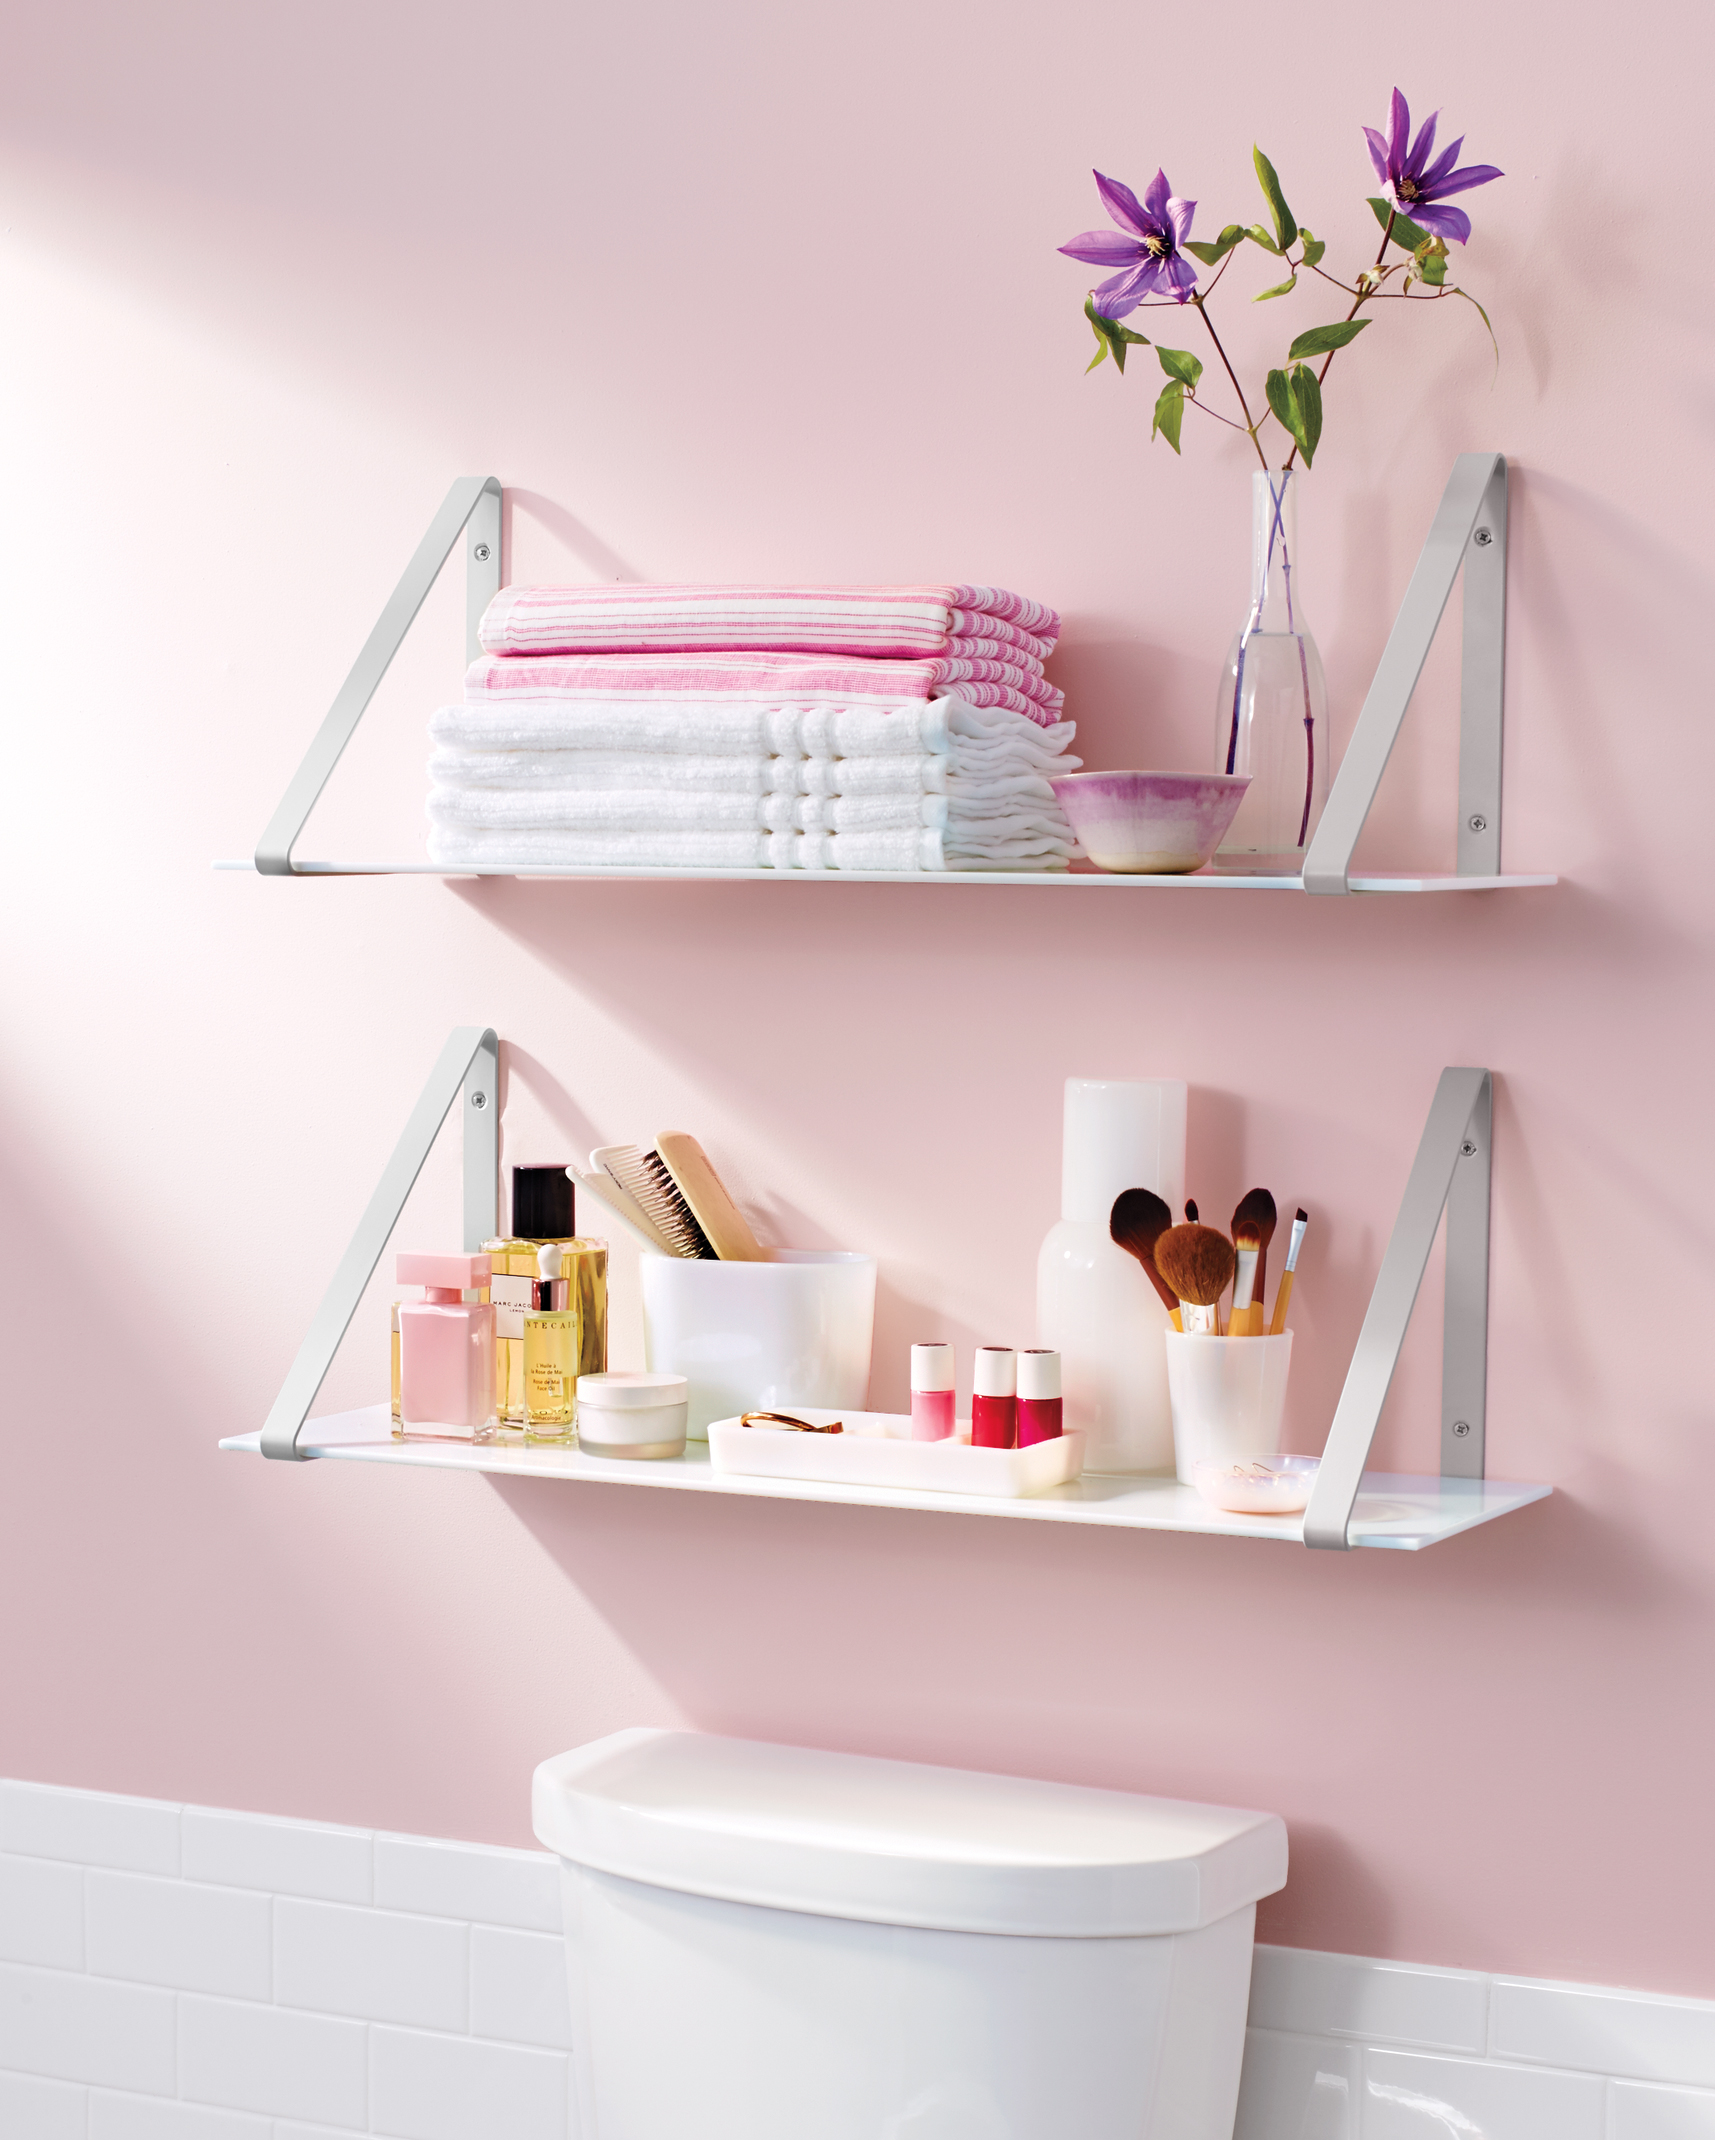 shelving-bathroom-315-d112185.jpg